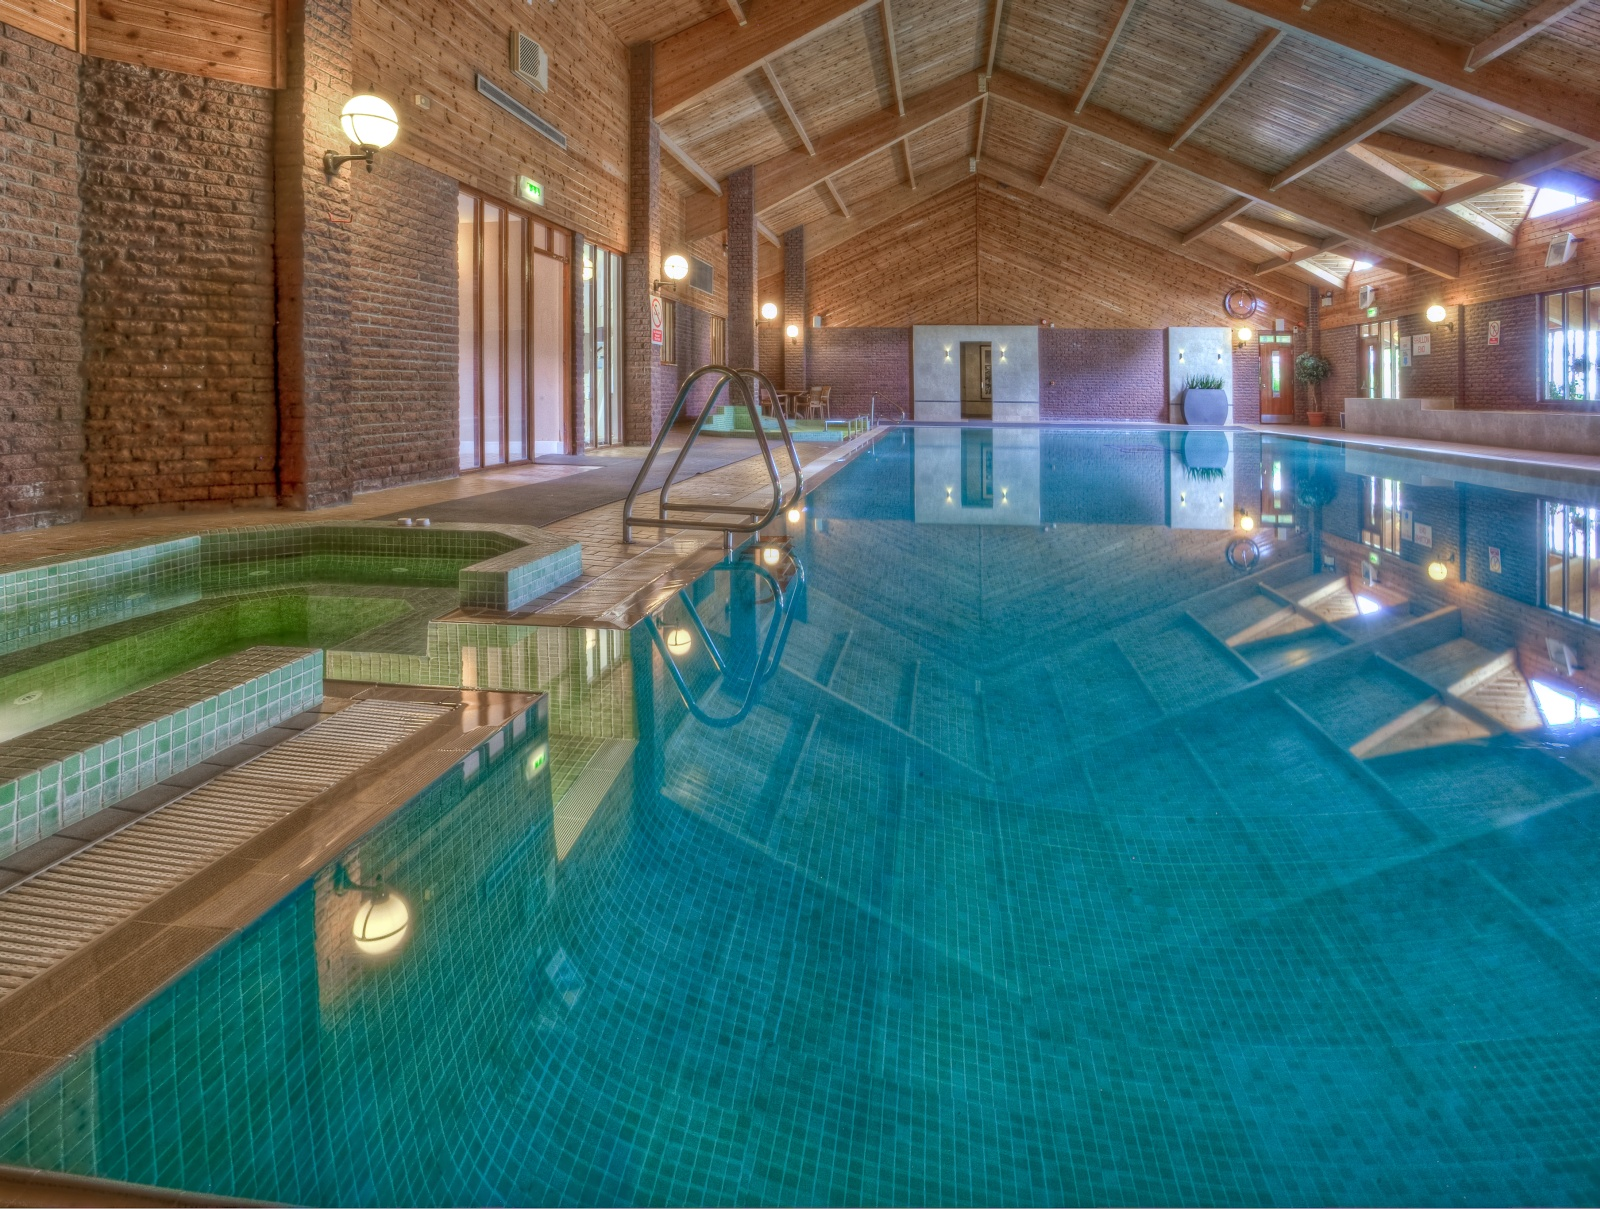 Auchrannie house hotel and spa - Luxury scottish hotels with swimming pools ...